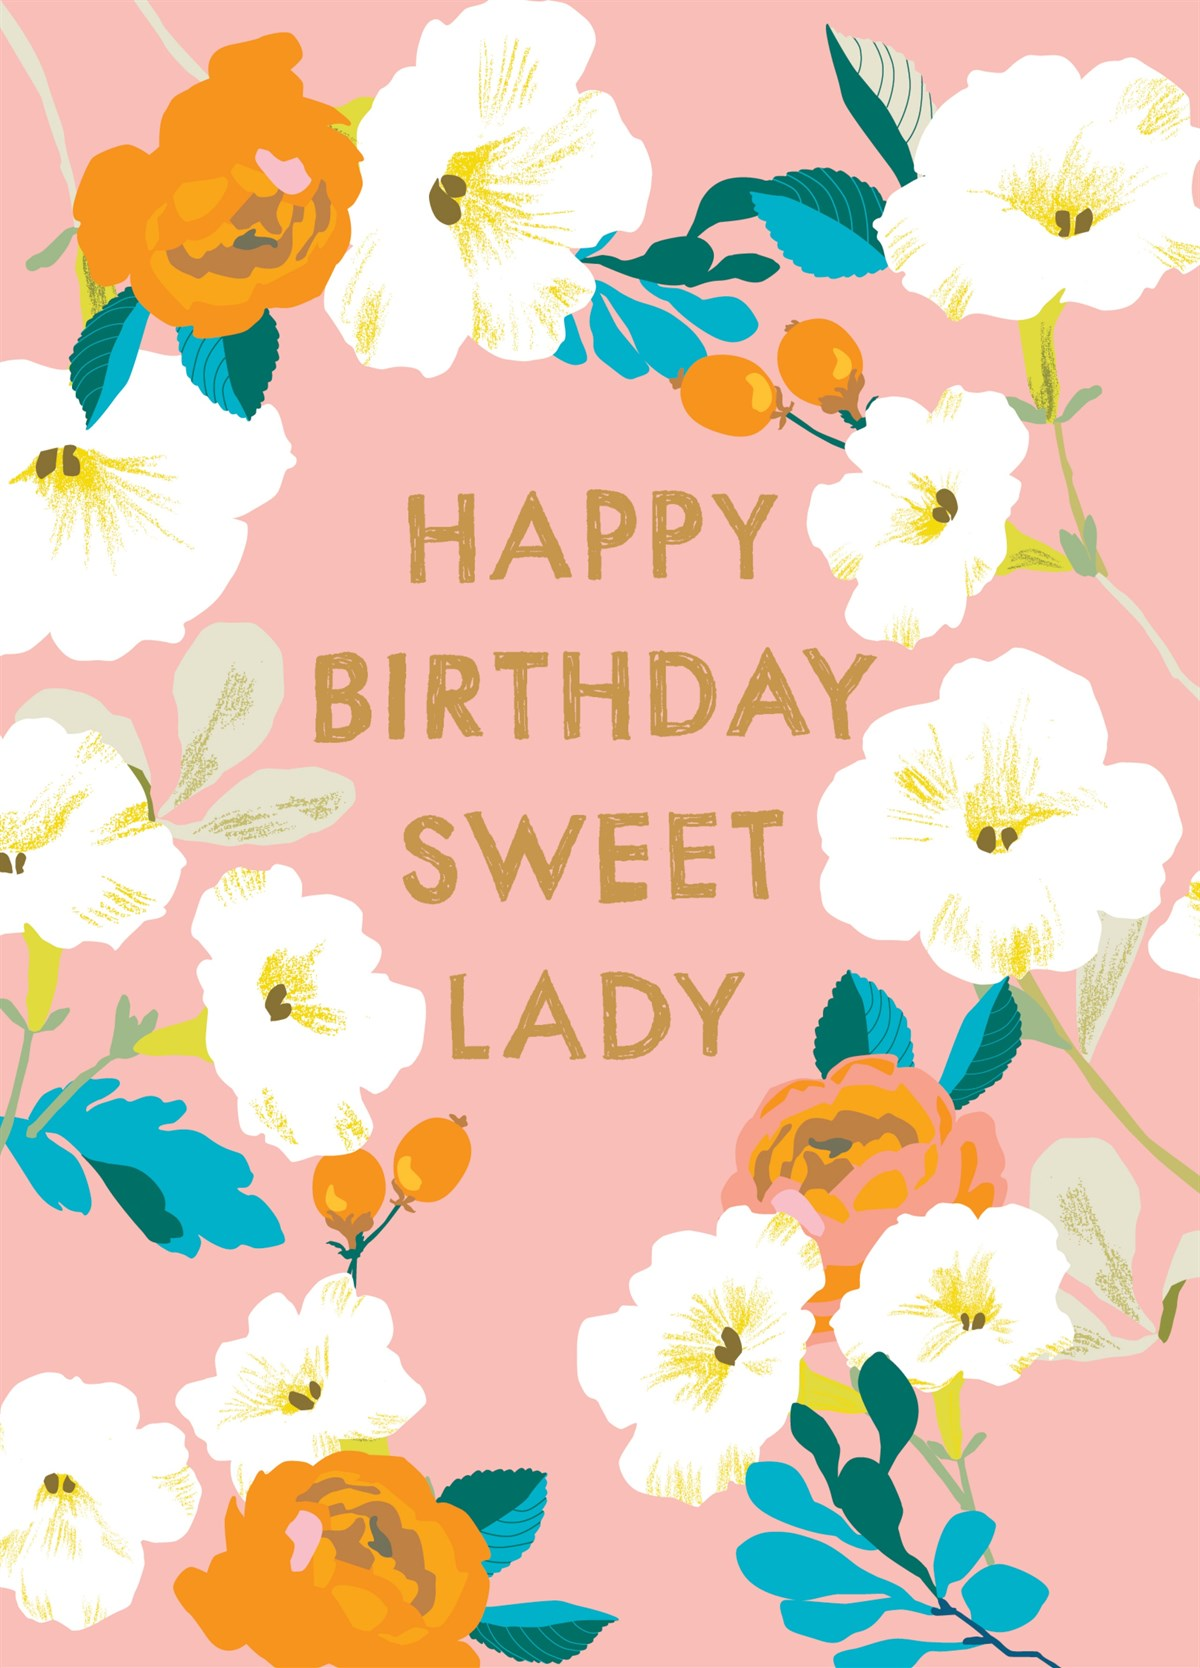 happy birthday sweet lady floral zoomed image hover to zoom